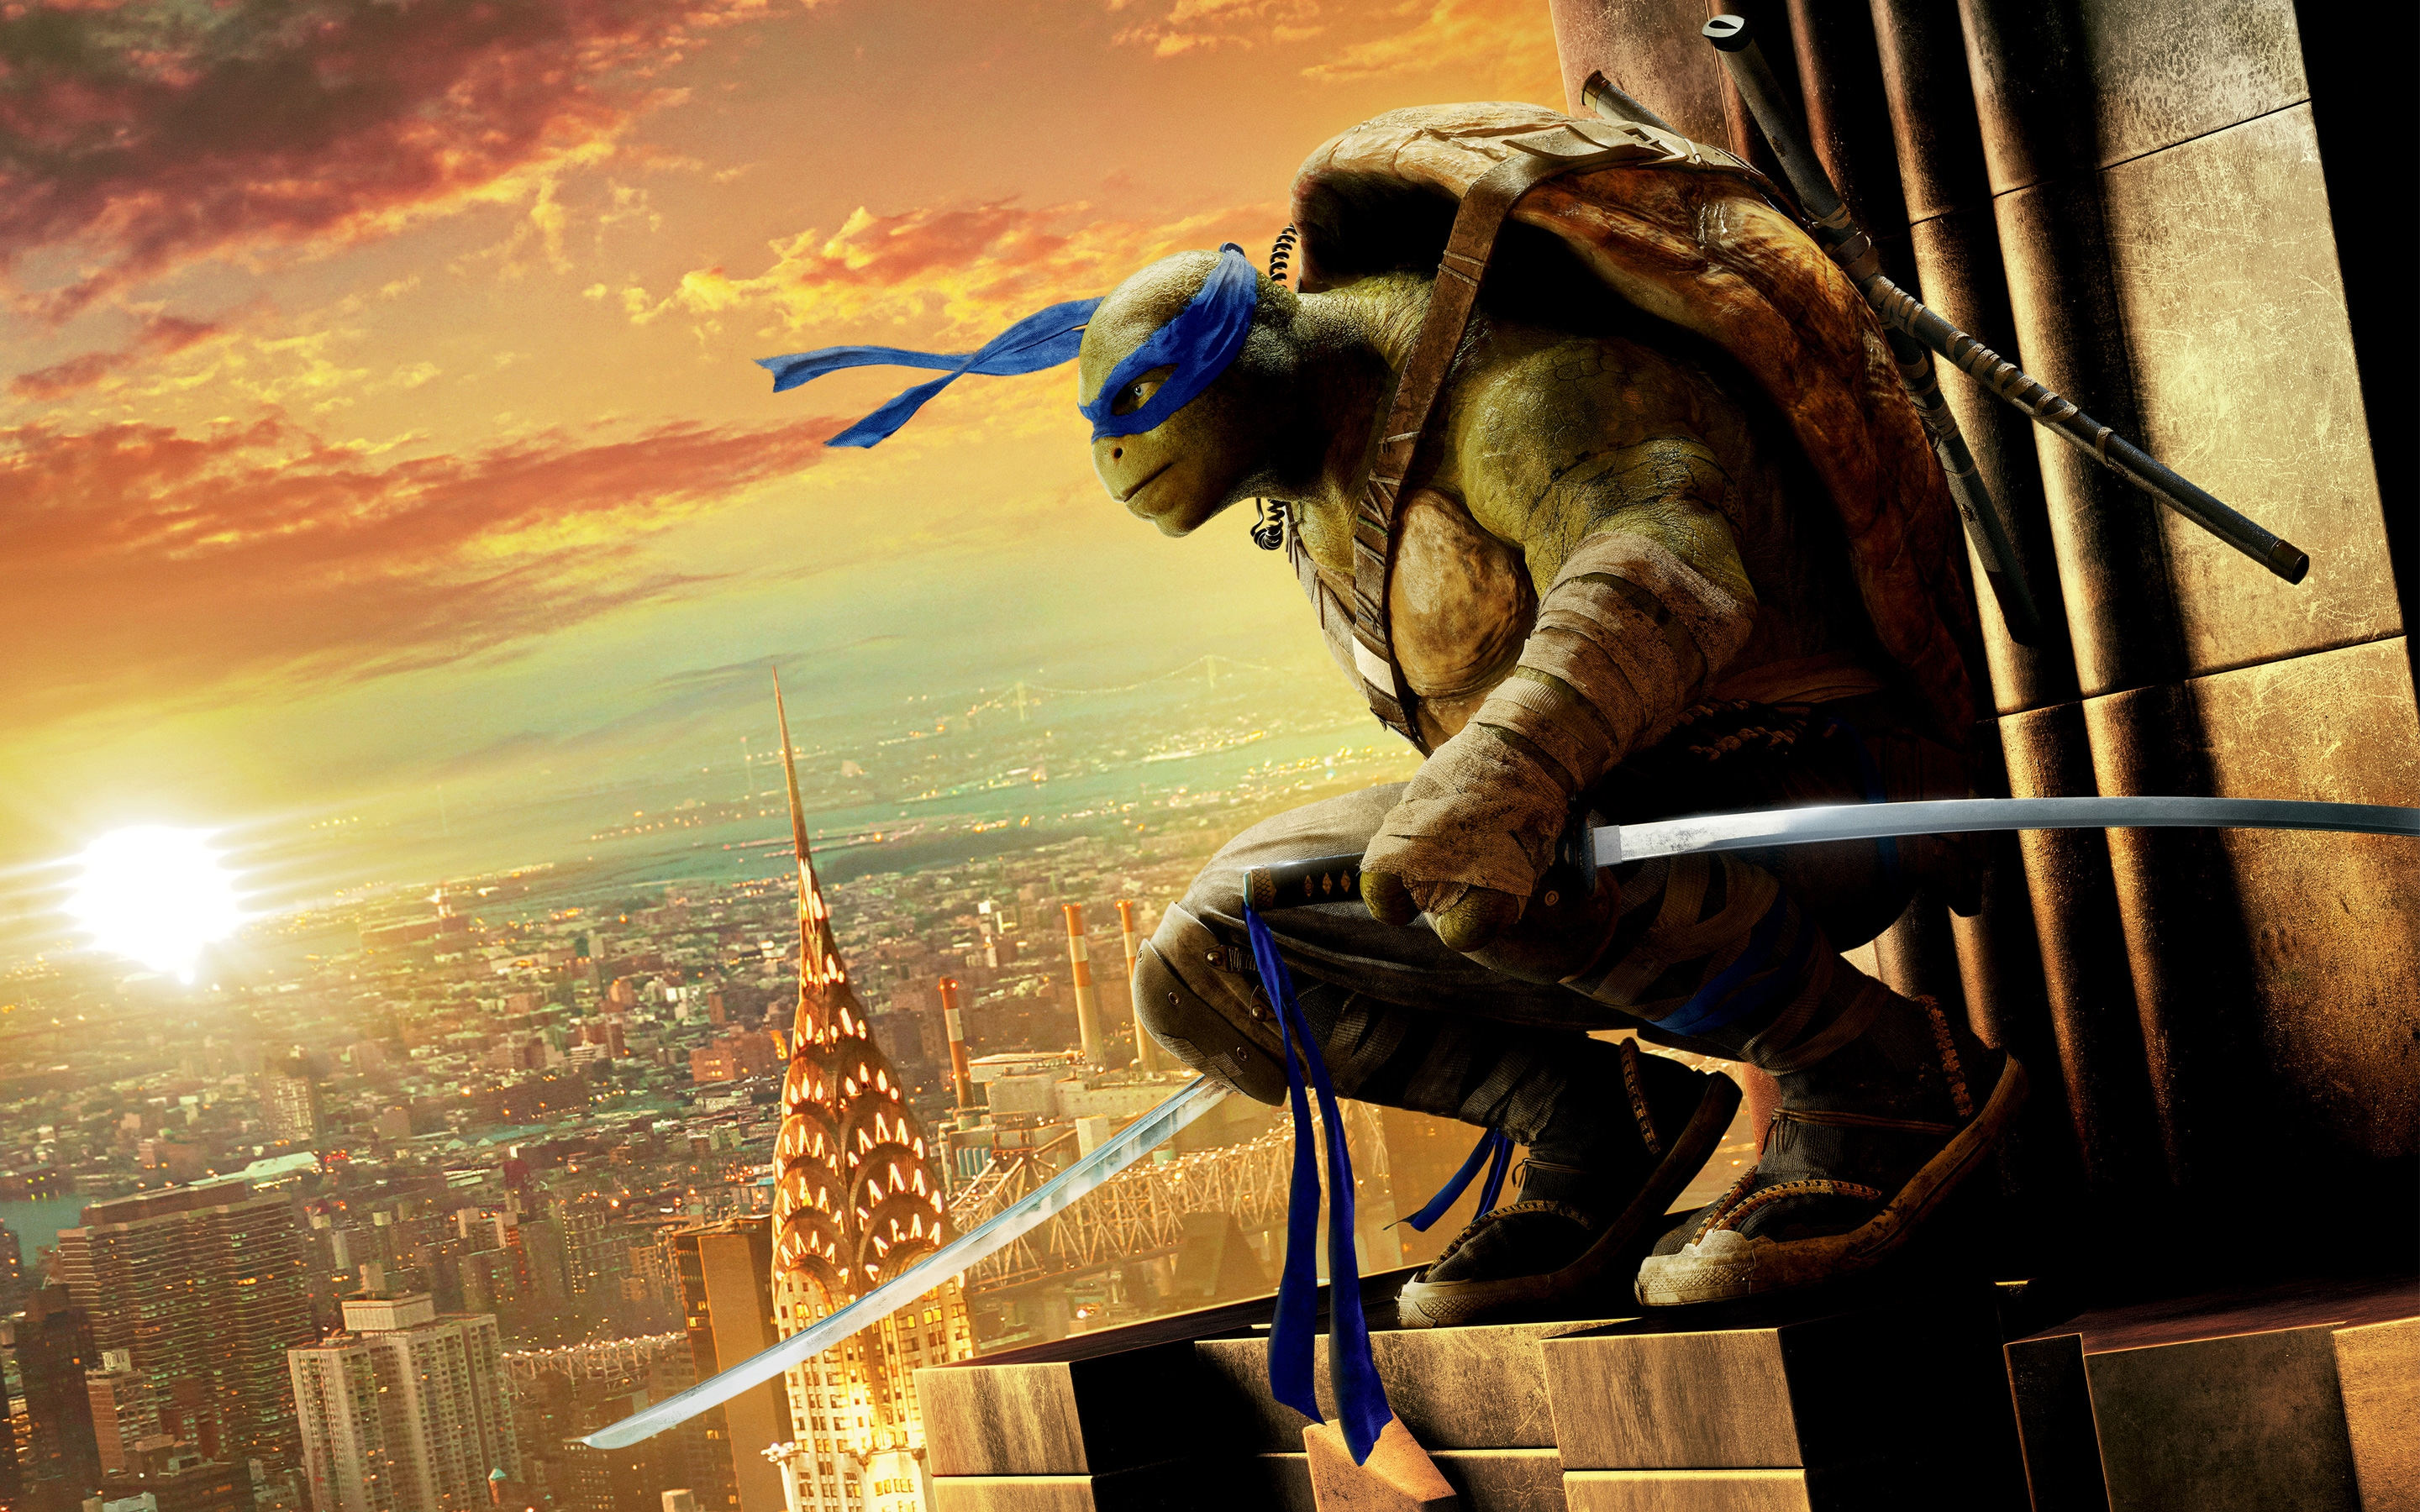 Mutant Ninja Turtle High Quality Background